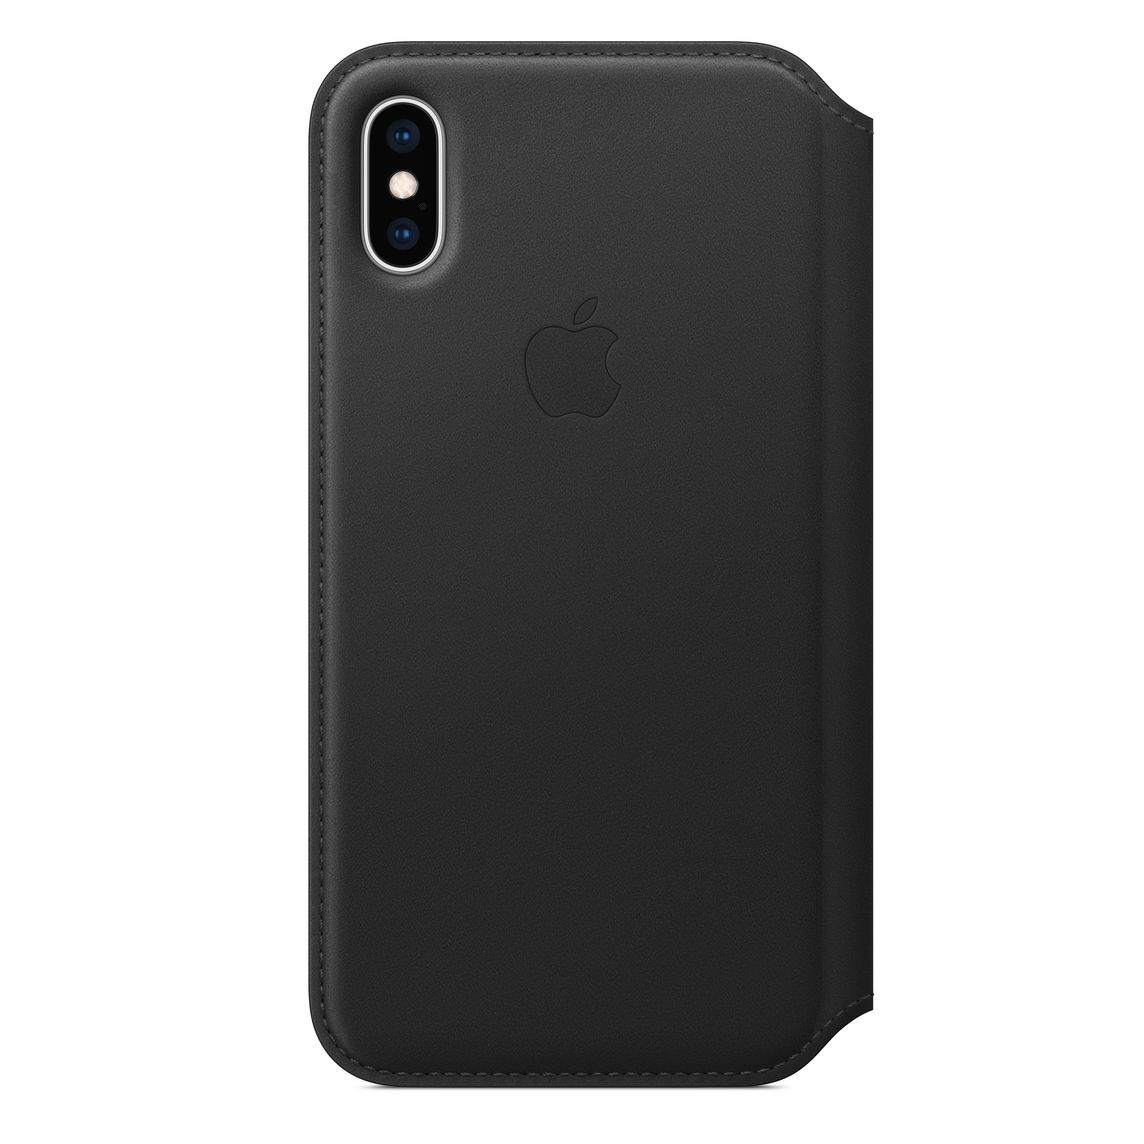 new product 680b6 09116 iPhone XS Leather Folio - Black